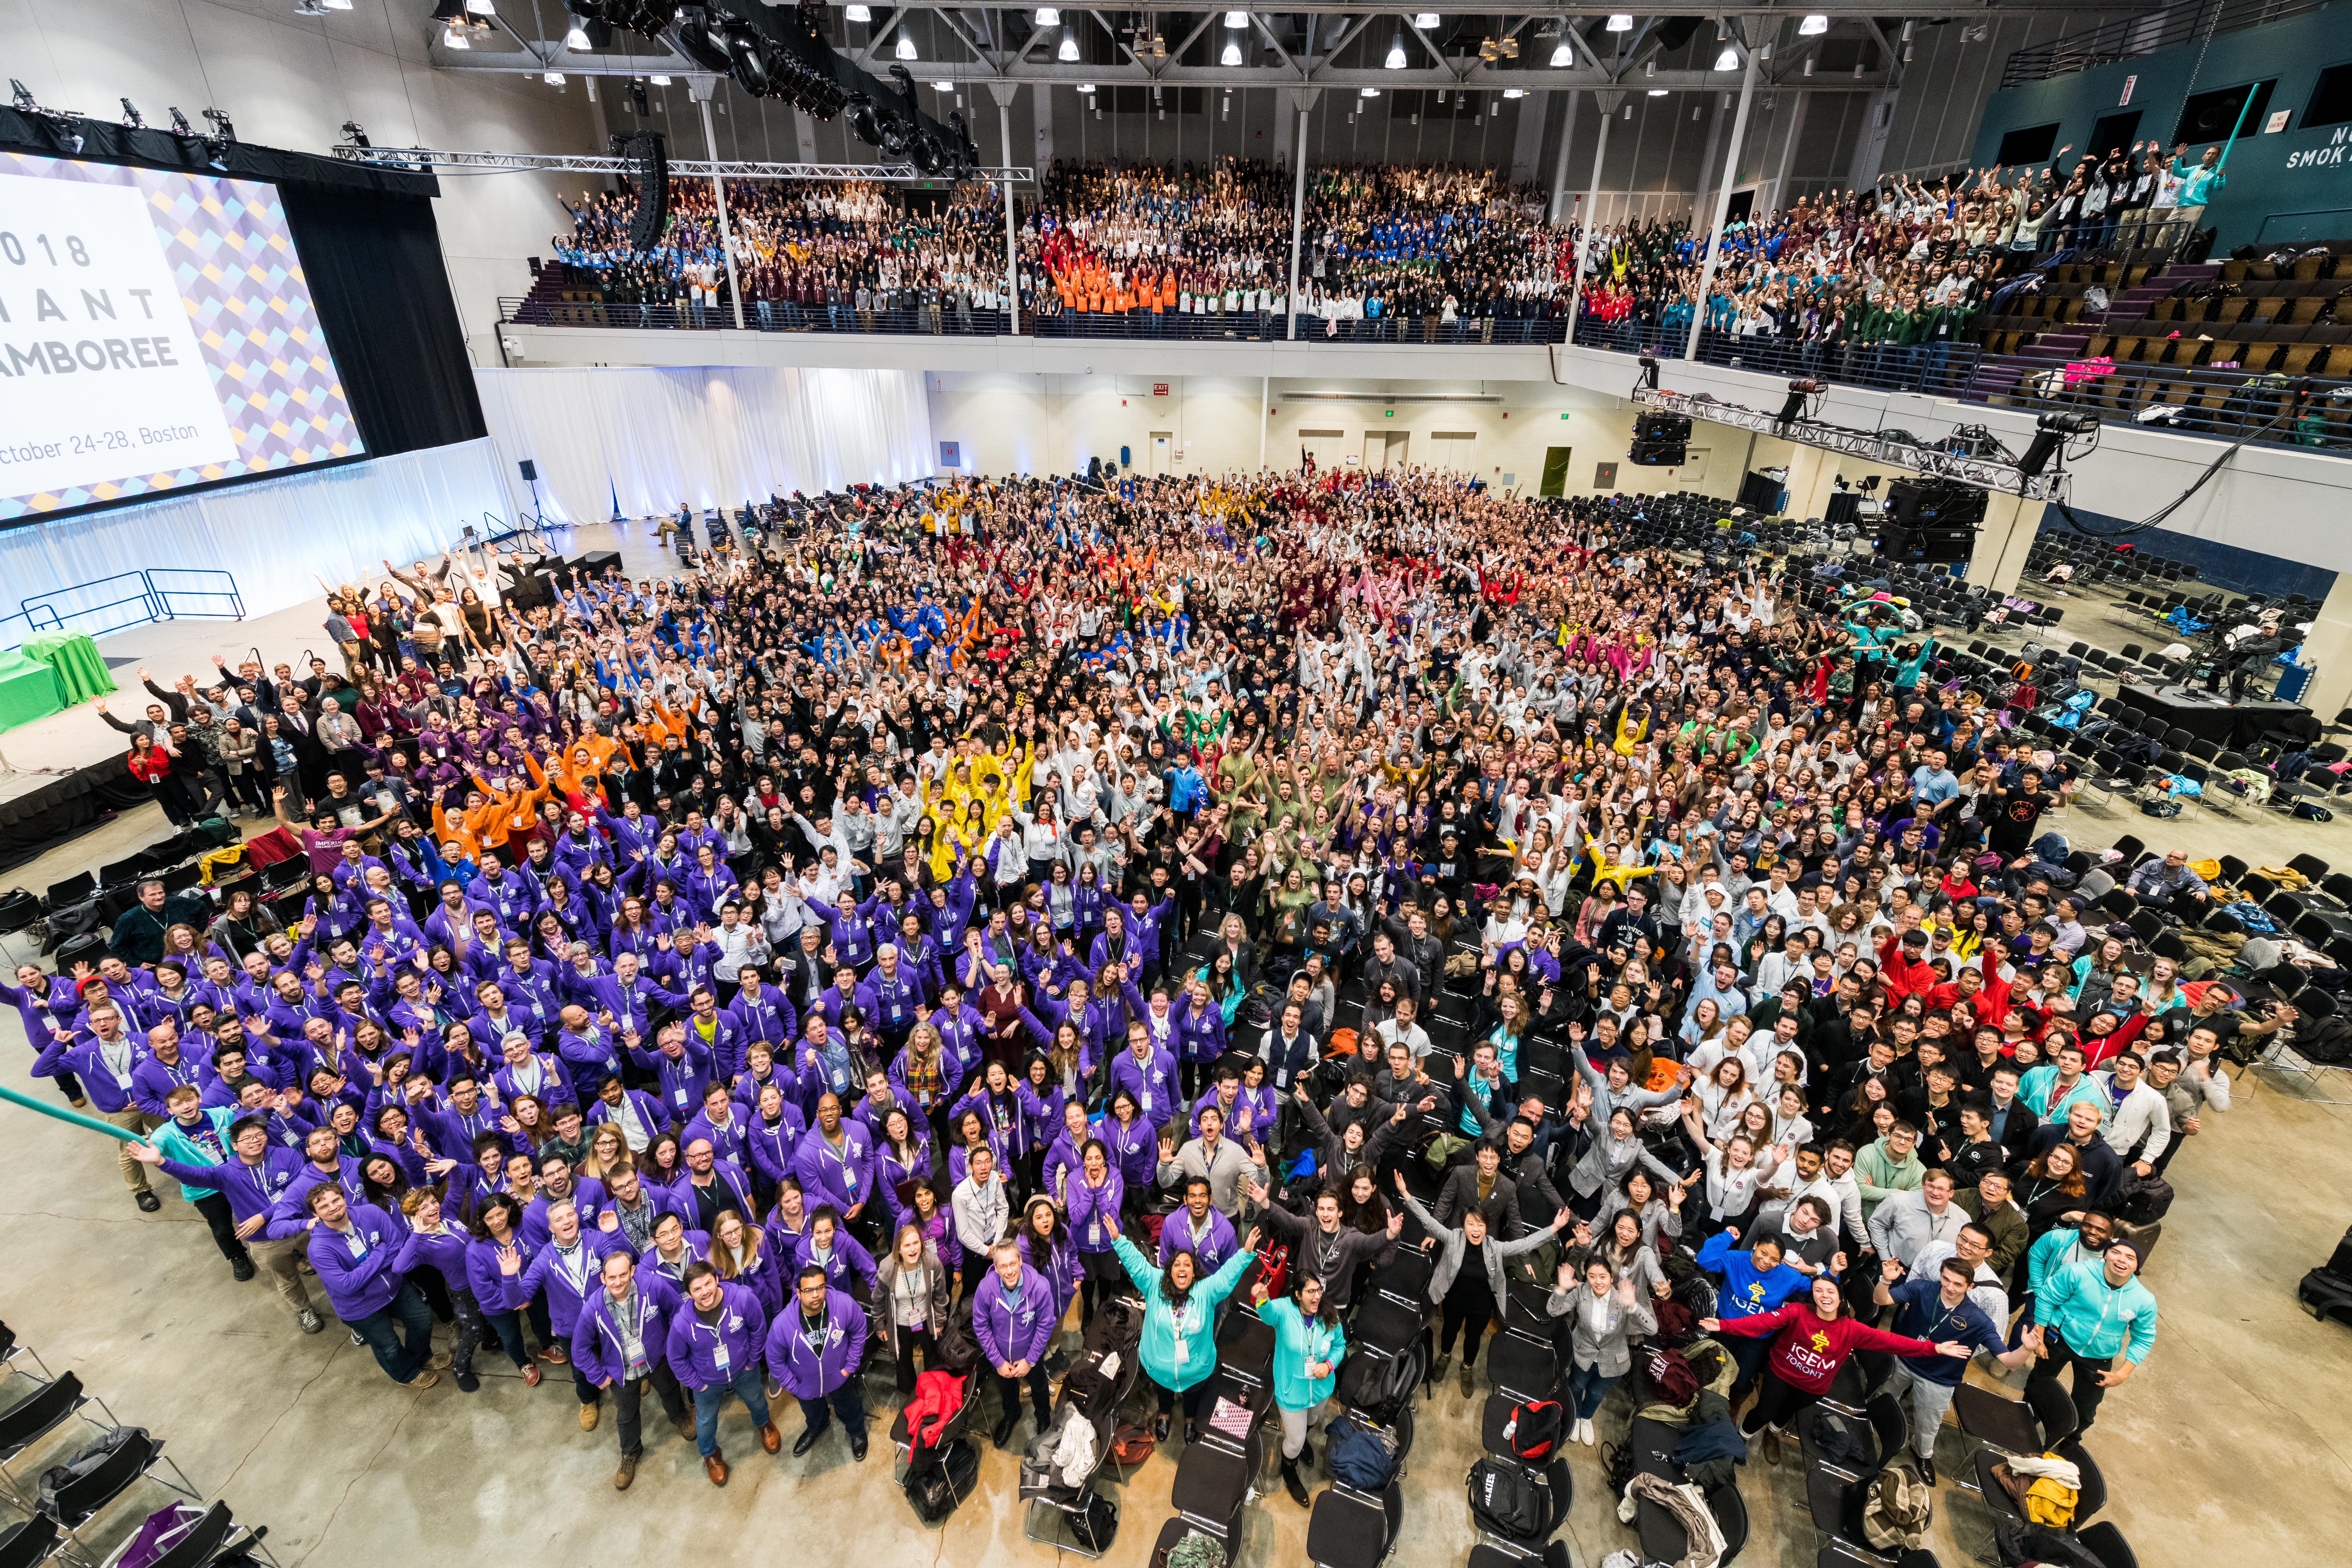 Announcing the 2019 Opentrons + iGEM Partnership